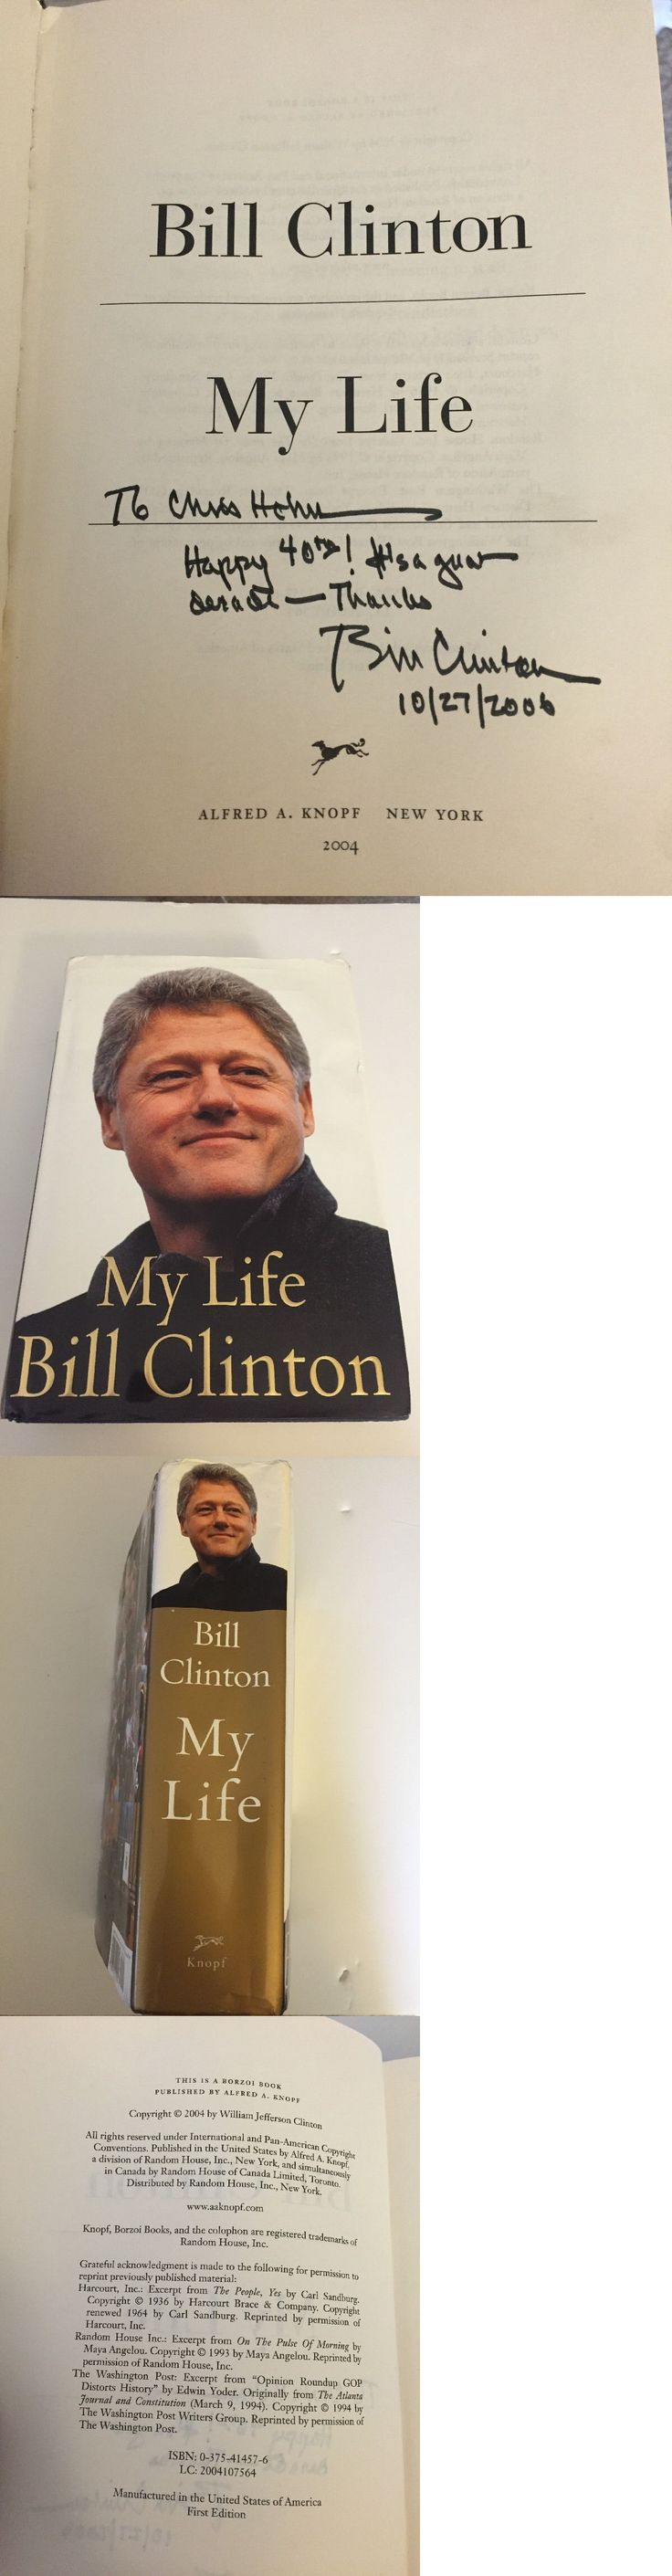 Bill Clinton: President Bill Clinton Signed And Inscribed Book - My Life - To Chris Hohn -> BUY IT NOW ONLY: $450 on eBay!